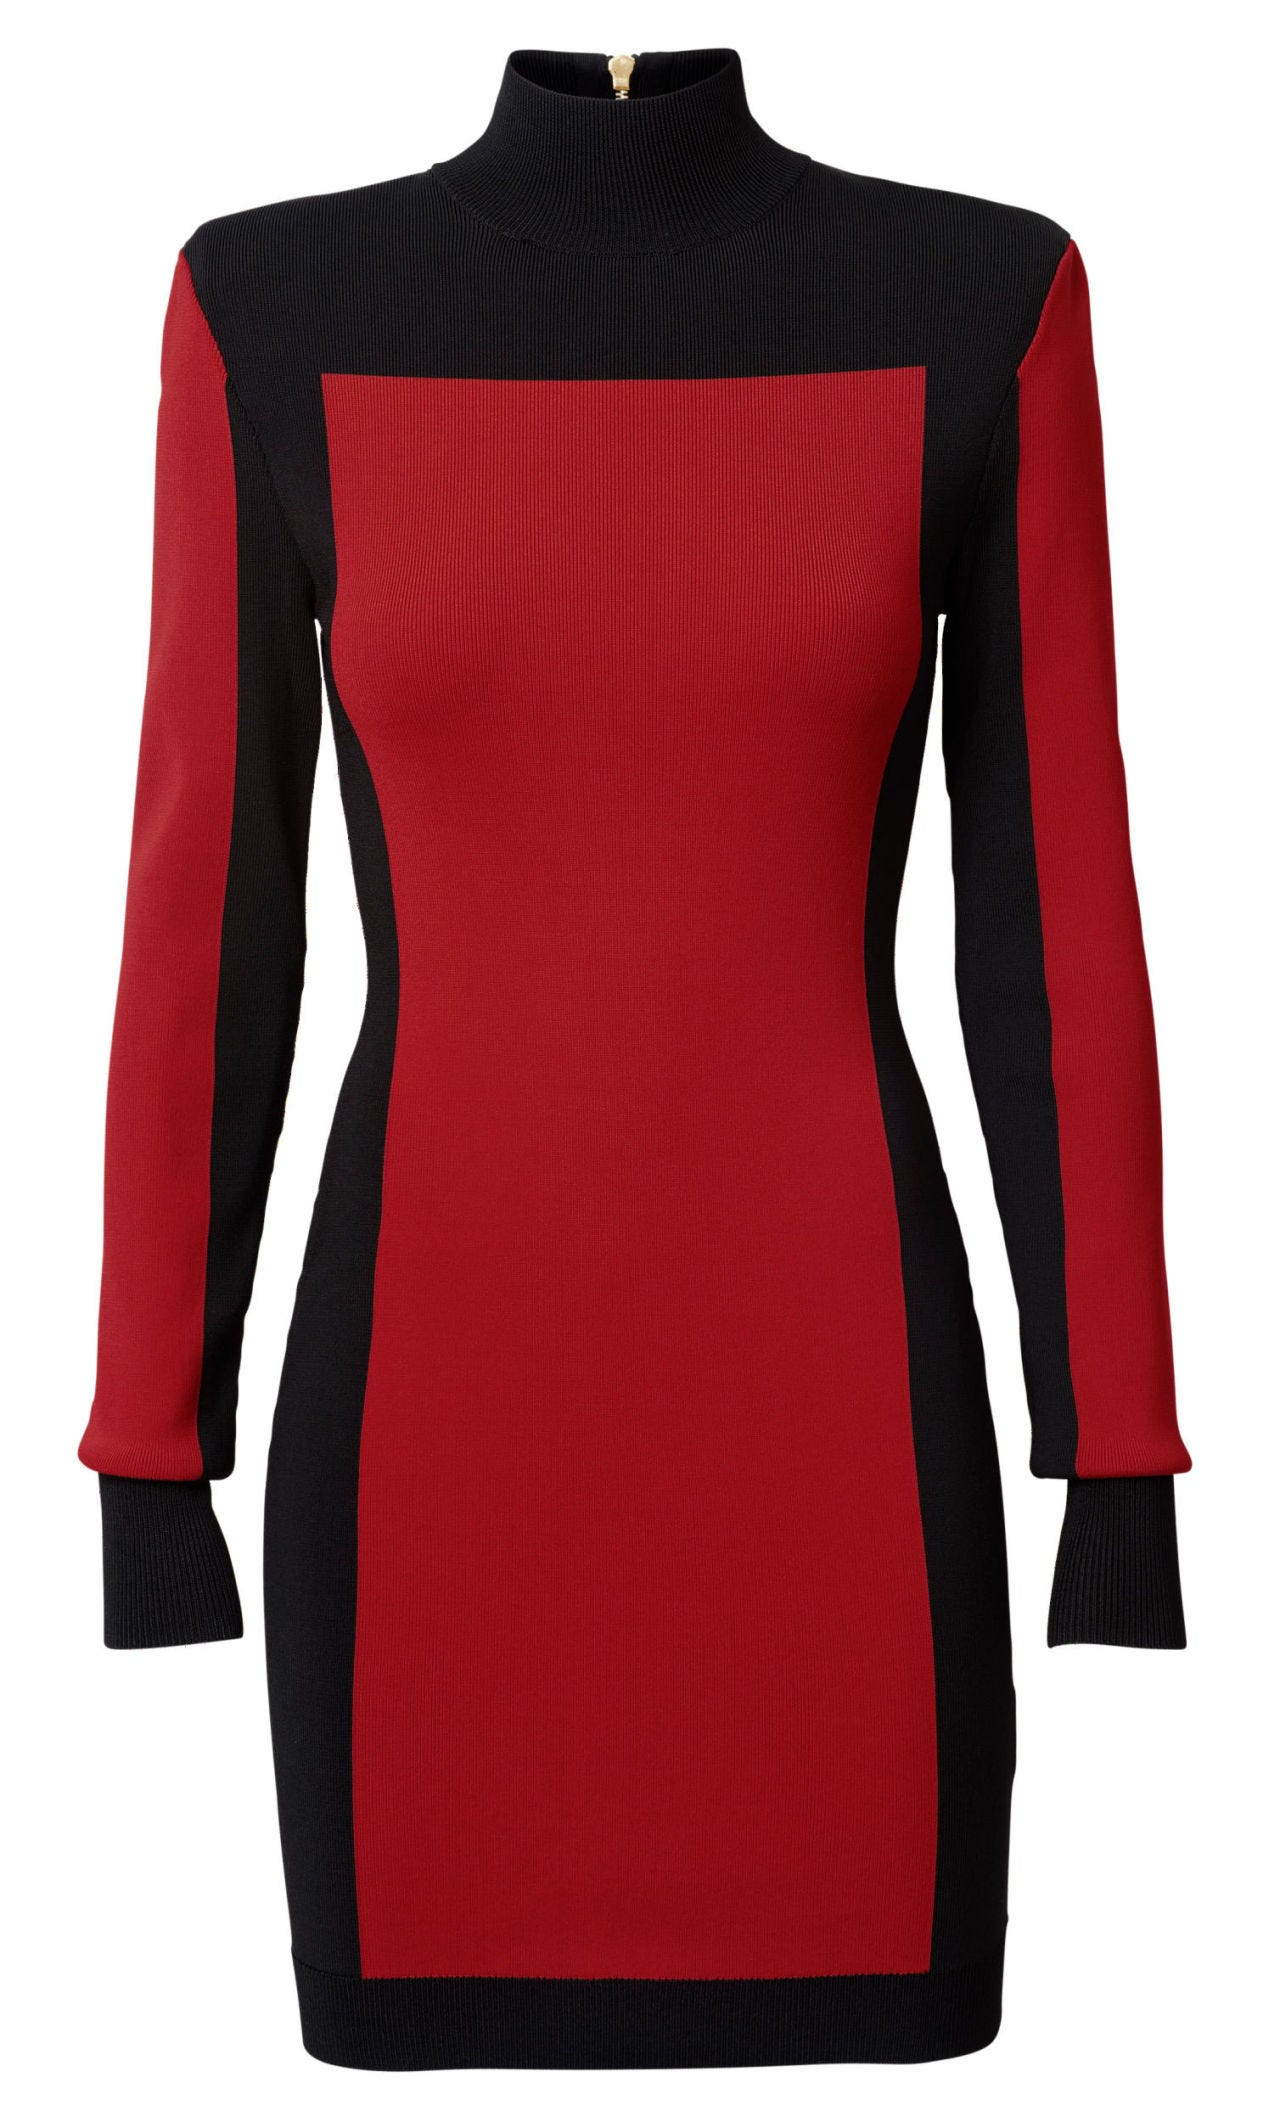 Sleeve, Shoulder, Red, Textile, Joint, Standing, Pattern, Dress, Carmine, Maroon,